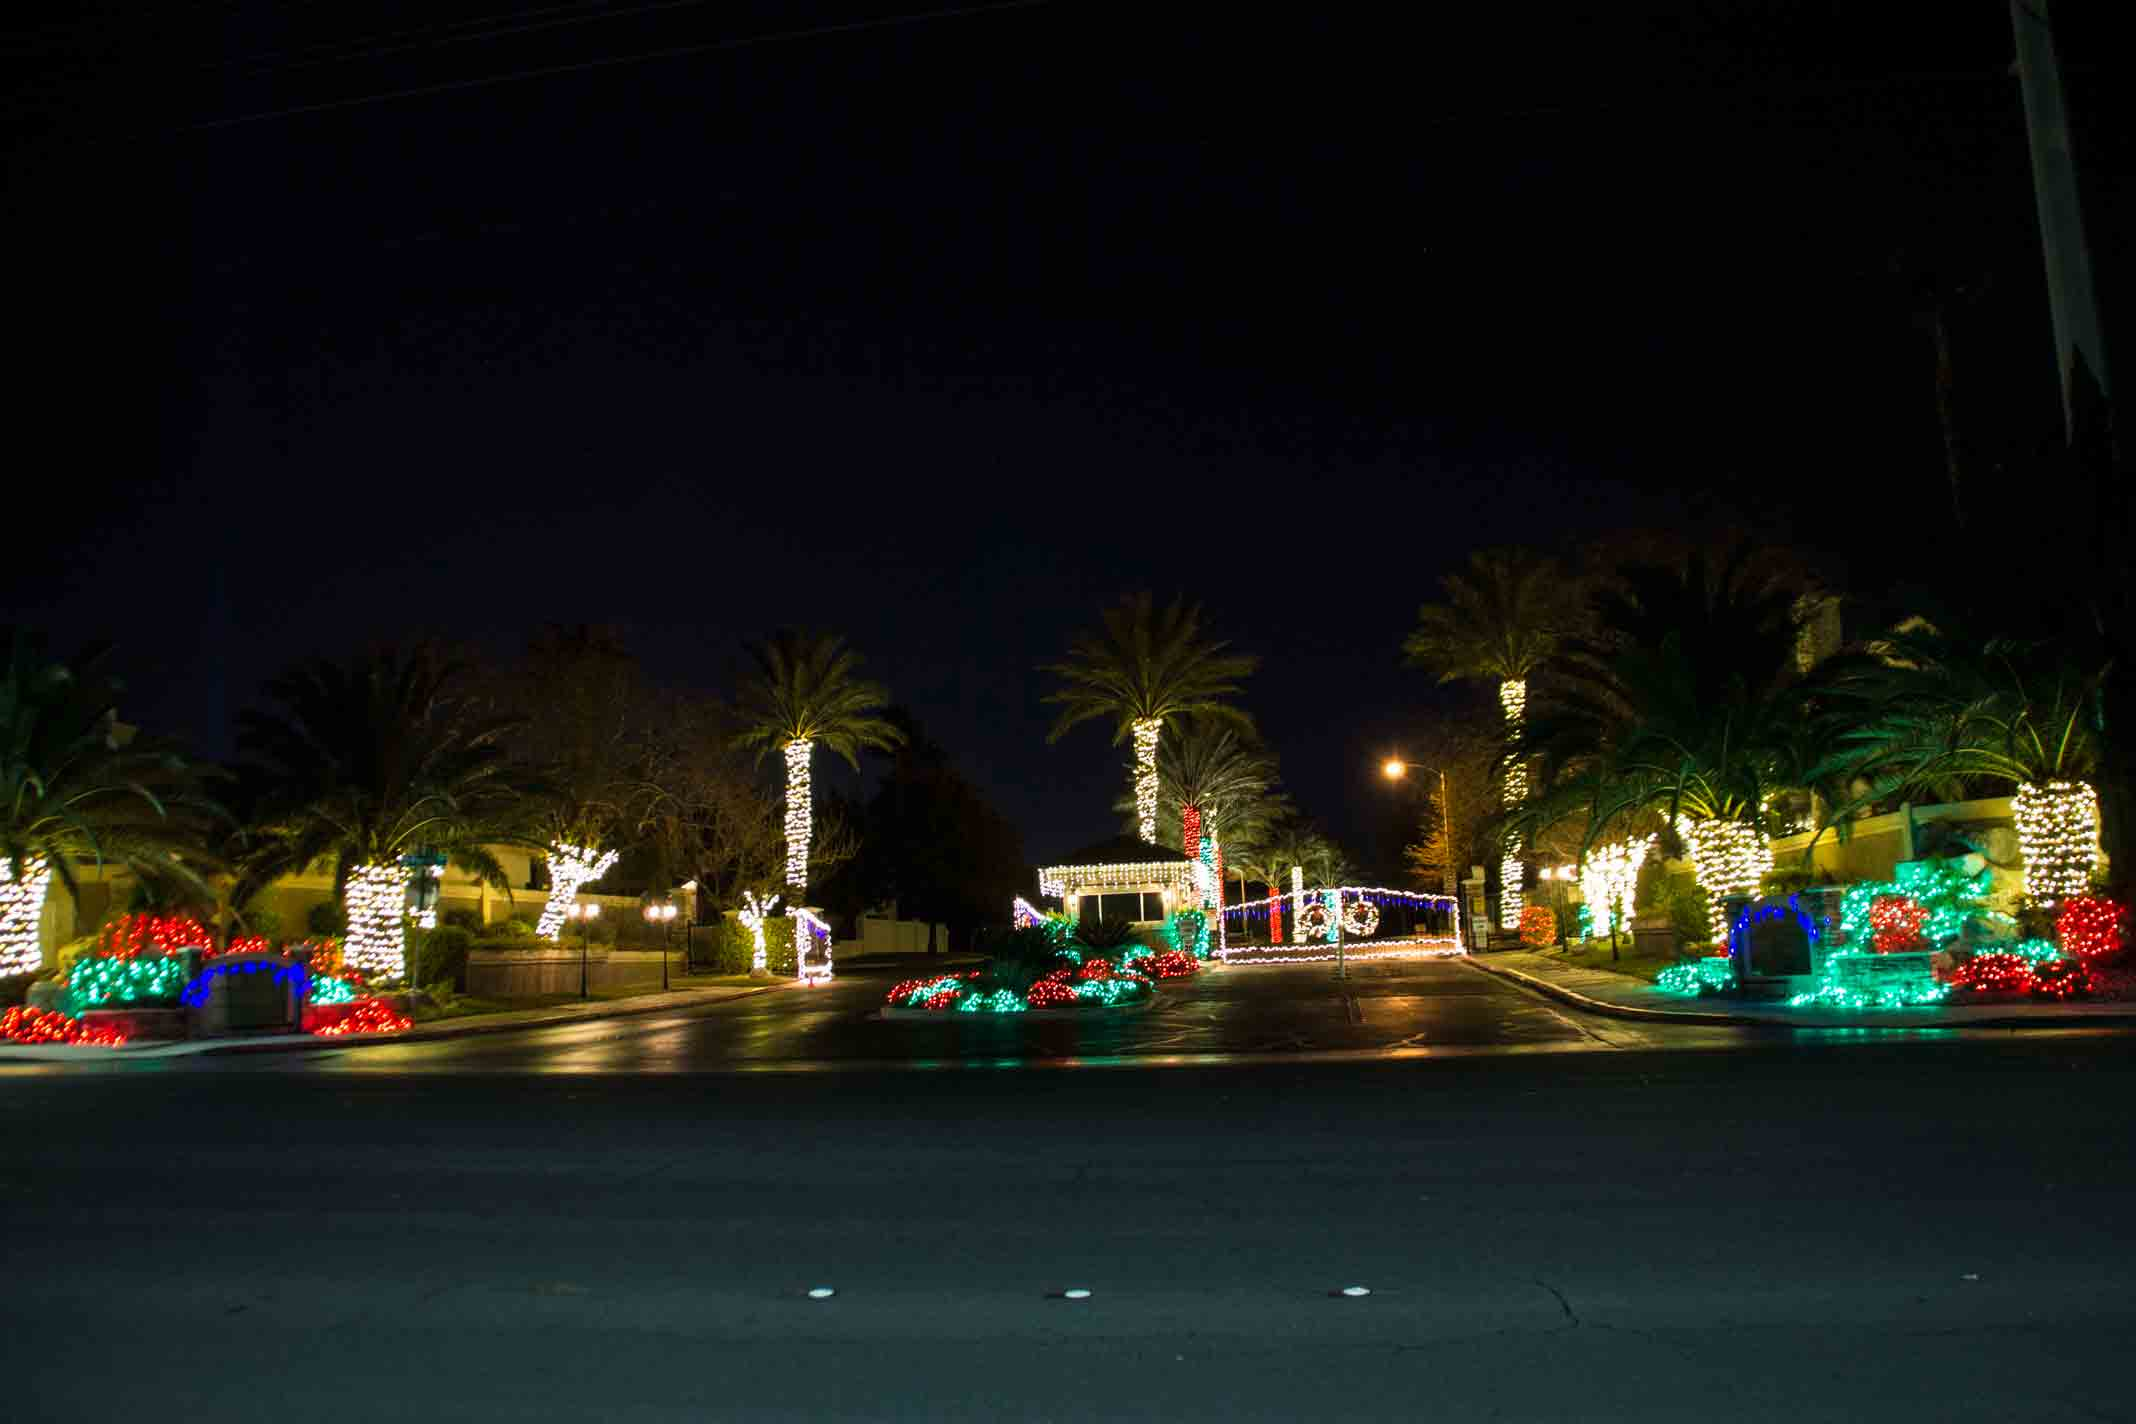 Green Valley Christmas decor by Holiday Decorations in Las Vegas